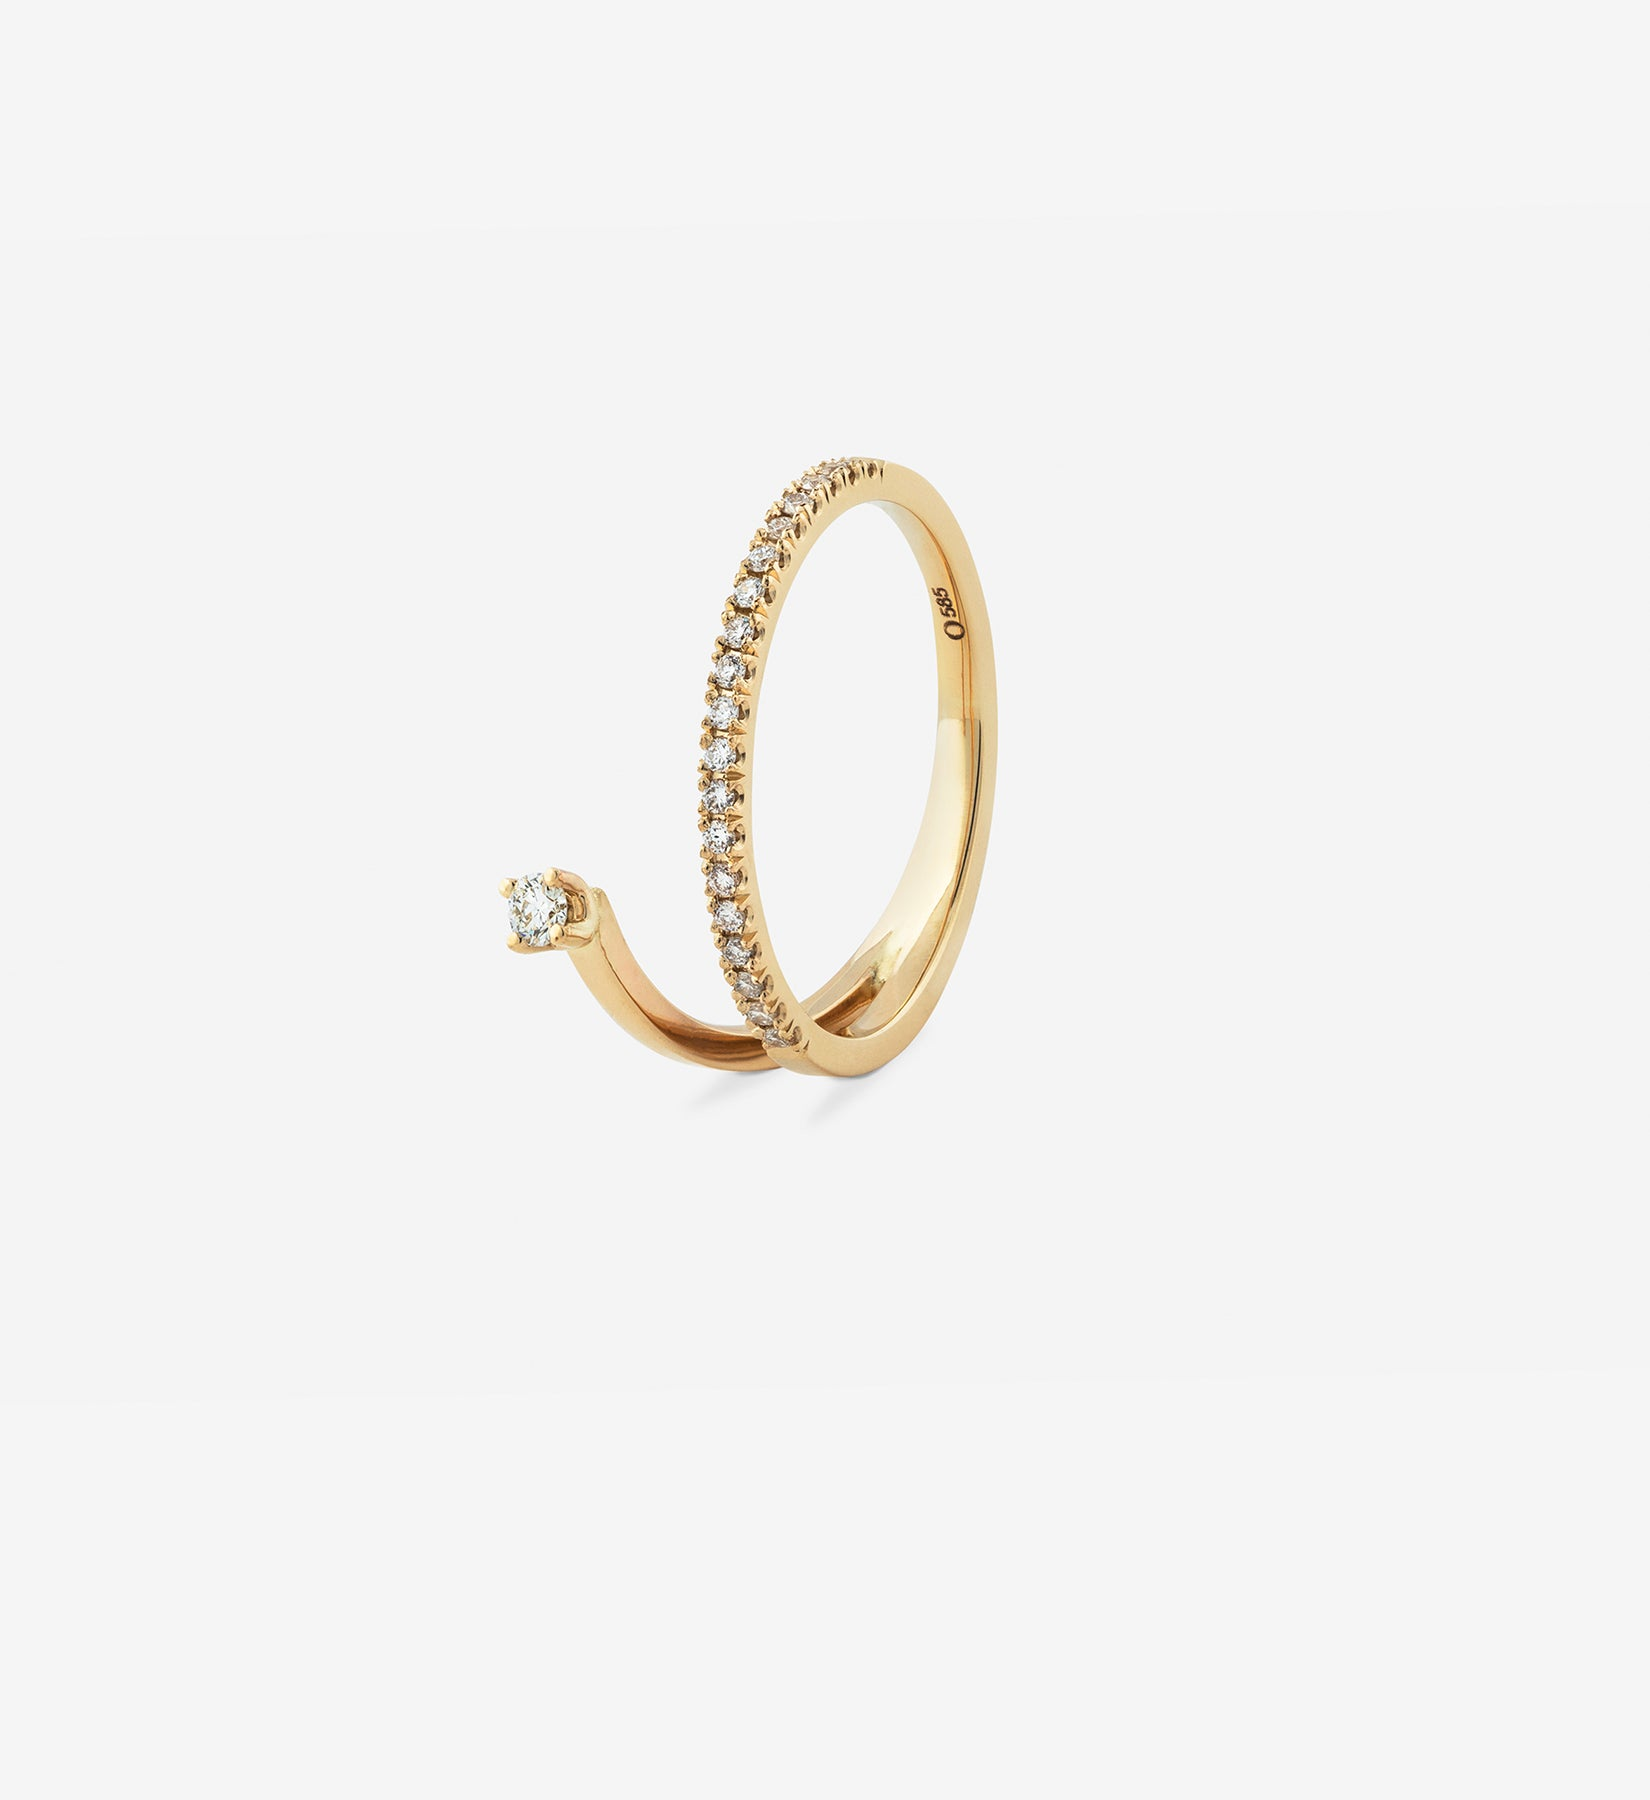 OUVERTURE, Fine jewelry, 14K gold, diamonds, golden ring, diamond ring, golden earring, diamond earring. Handcrafted jewelry. Designed in Berlin. Demifine. Earparty. Stacking rings, schmuck, diamond ring, diamond spiral ring 0.17, wedding ring, engagement ring, diamond ring.